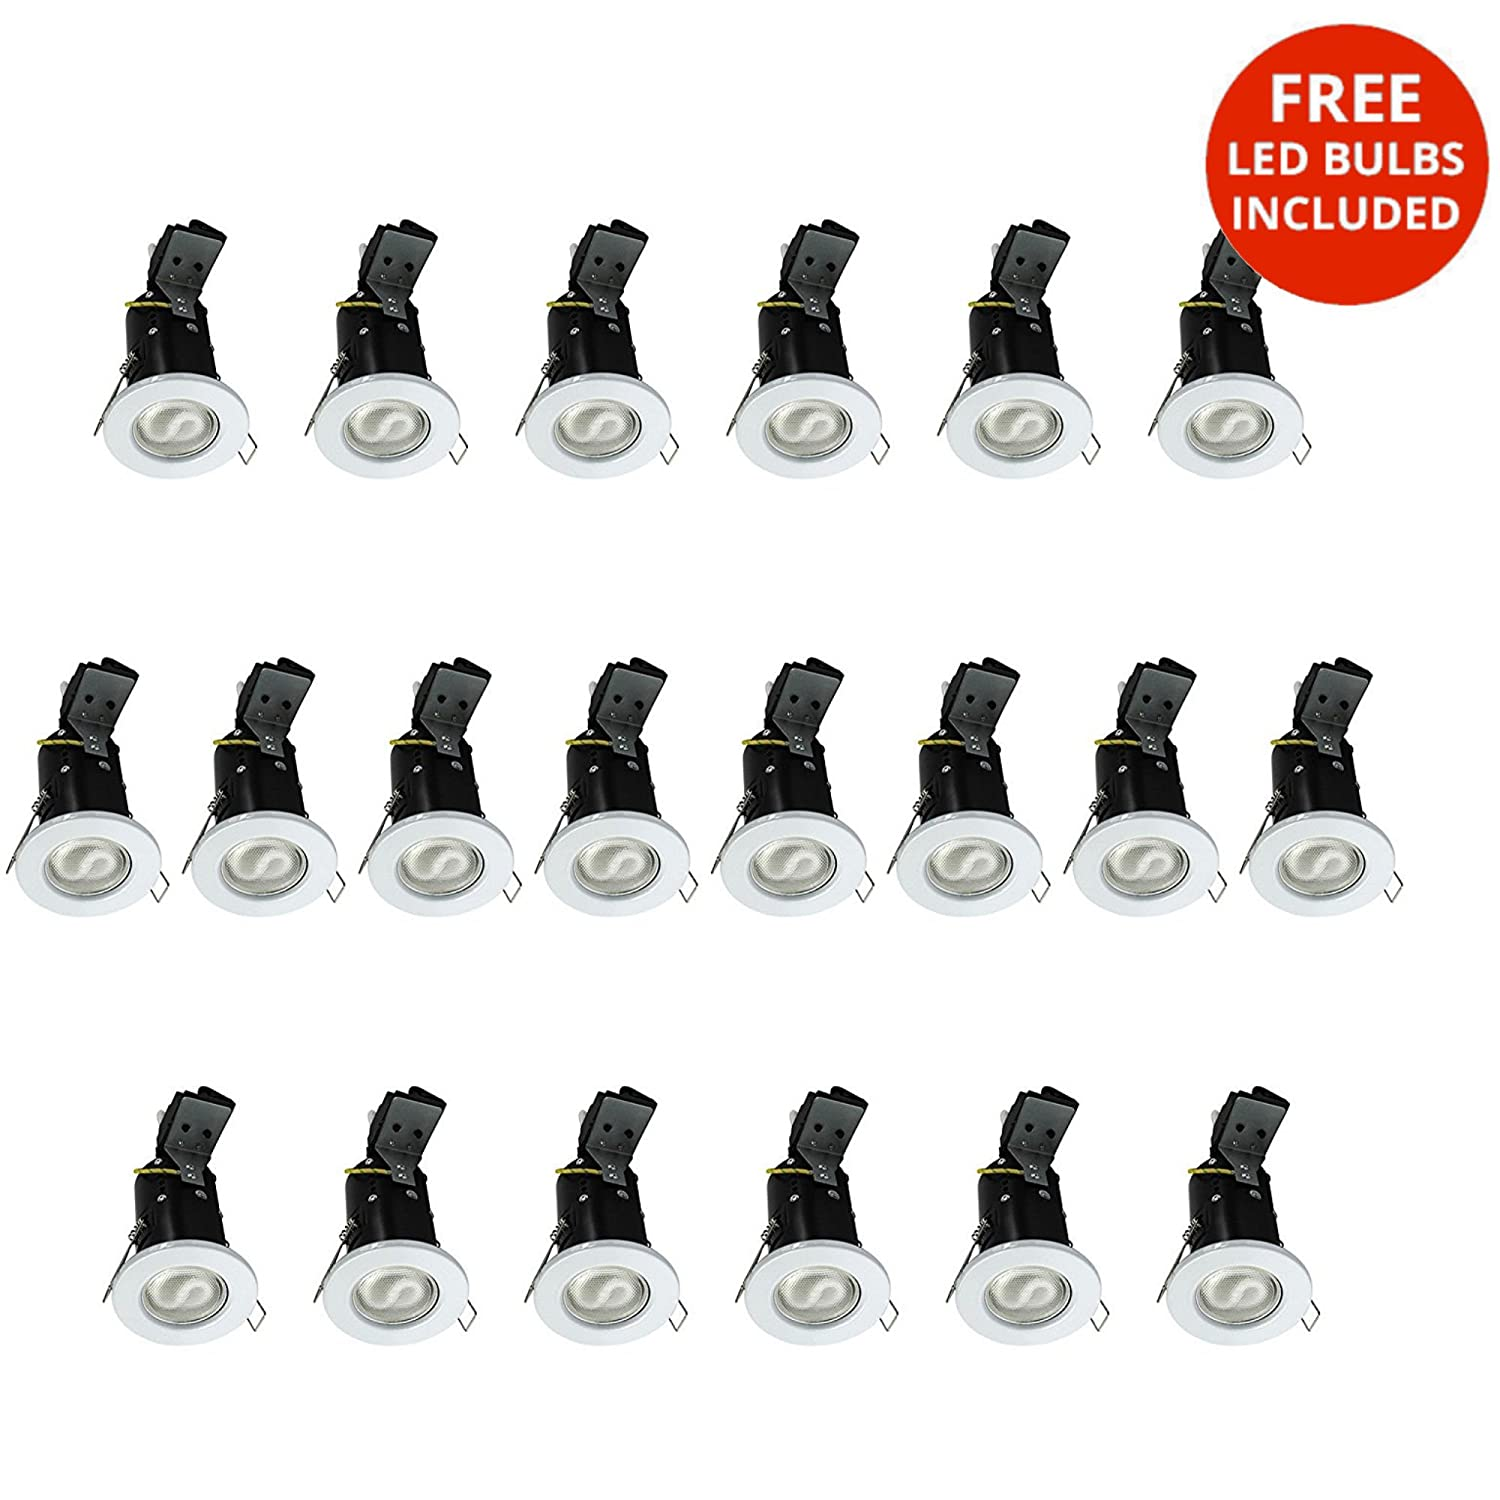 Chrome, 20 Pack Litecraft Fire Rated Ceiling Spotlight Downlights with LED Bulbs Included